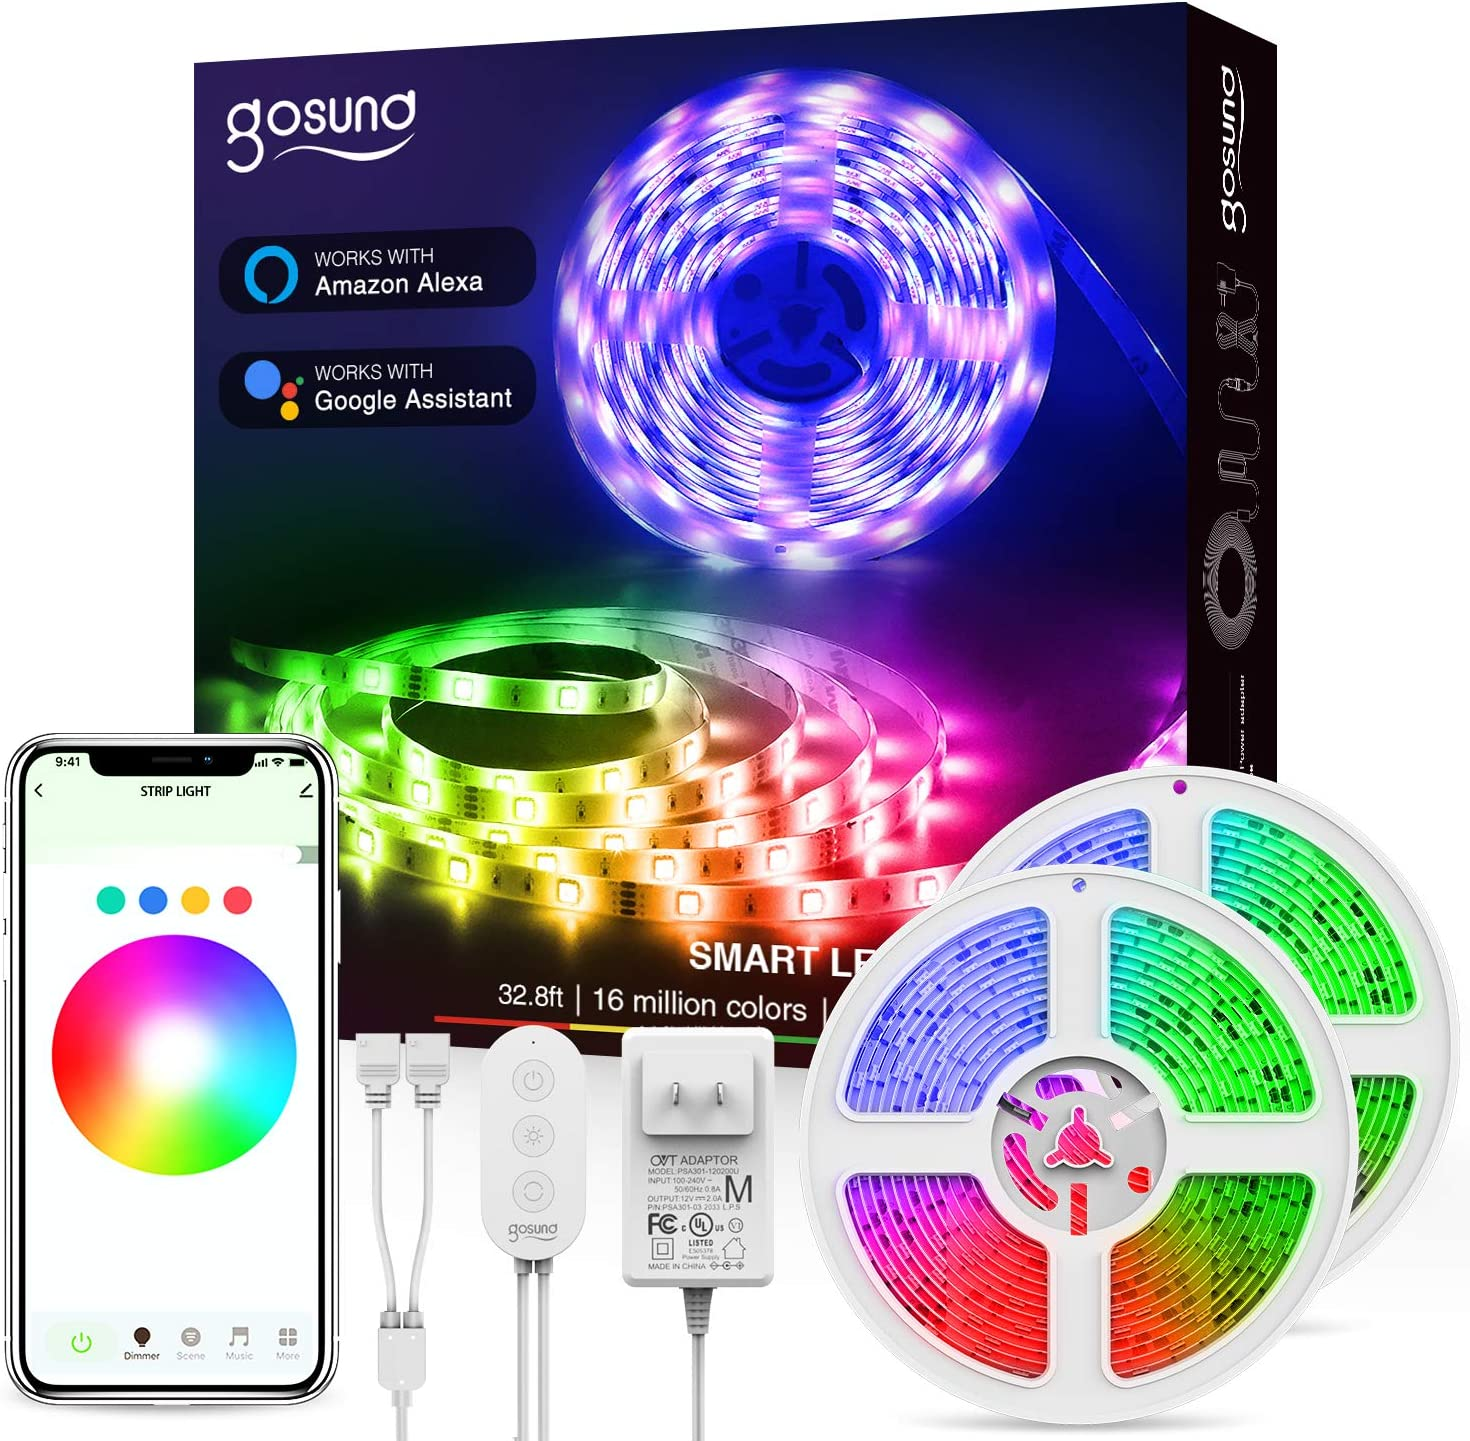 Led Strip Lights, Gosund Smart Wifi Led Lights 32.8ft Works with Alexa and Google Home, App Control, 16 Million Colors, Music Sync, Rgb Color Changing Led Strips for Bedroom, Home, Tv, Kitchen, Party